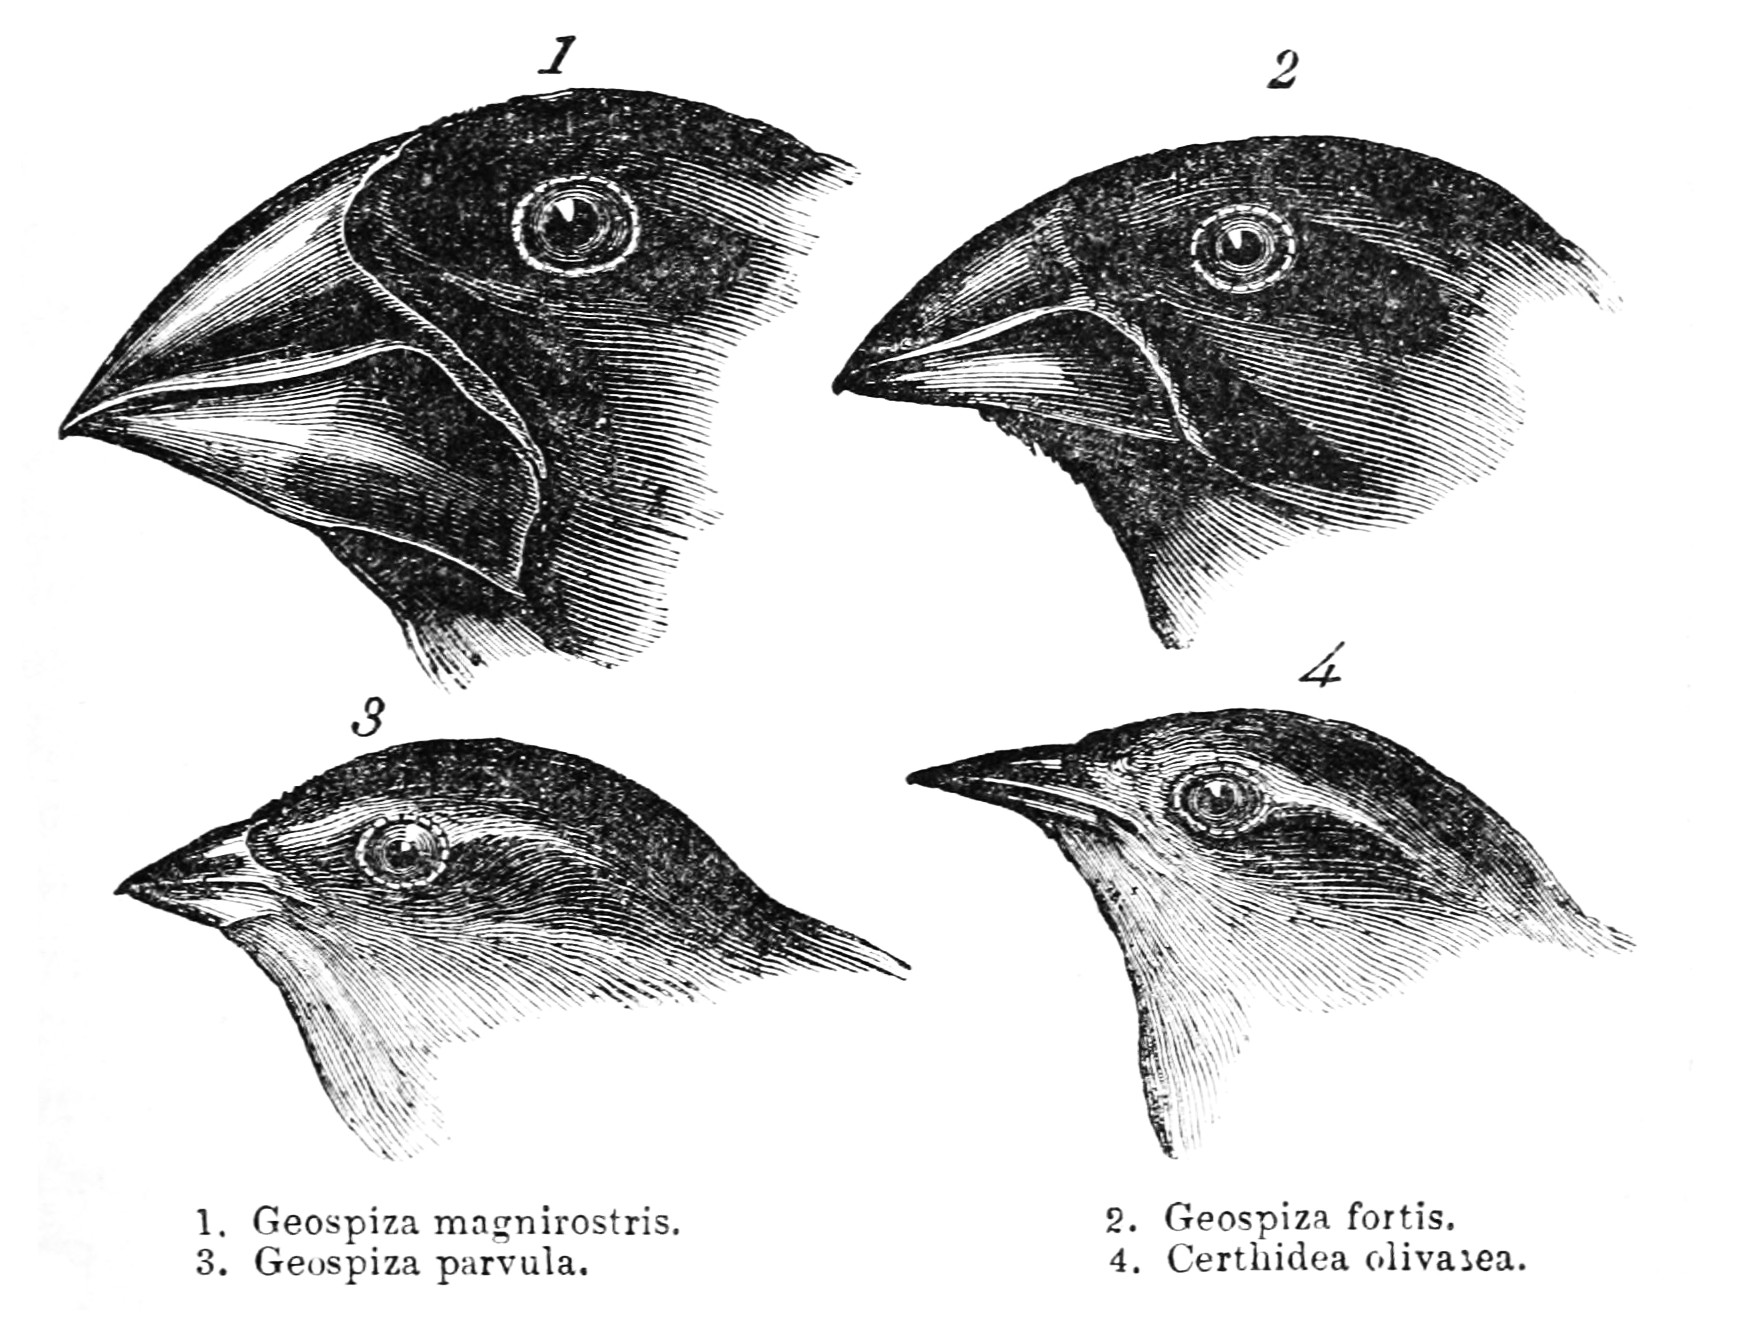 https://upload.wikimedia.org/wikipedia/commons/a/ae/Darwin%27s_finches_by_Gould.jpg